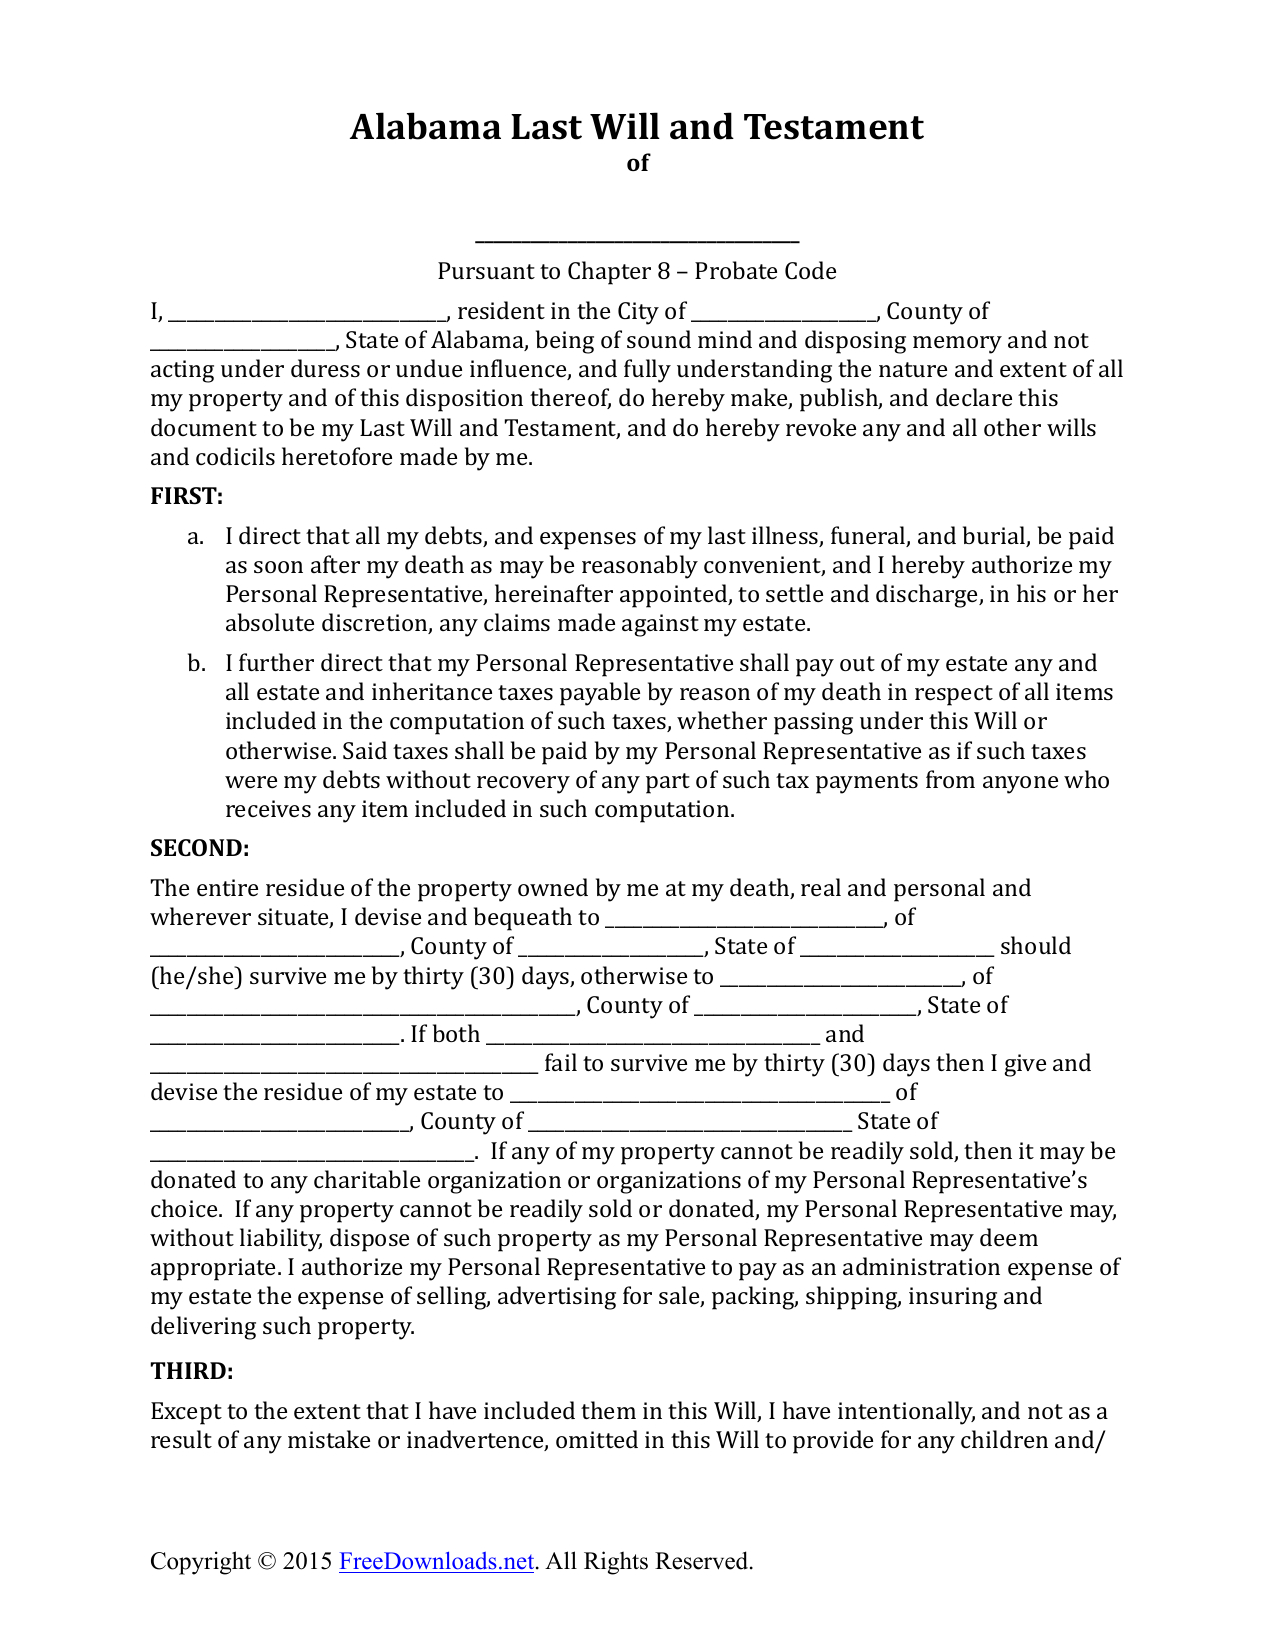 Download Alabama Last Will And Testament Form | Pdf | Rtf | Word - Free Printable Florida Last Will And Testament Form